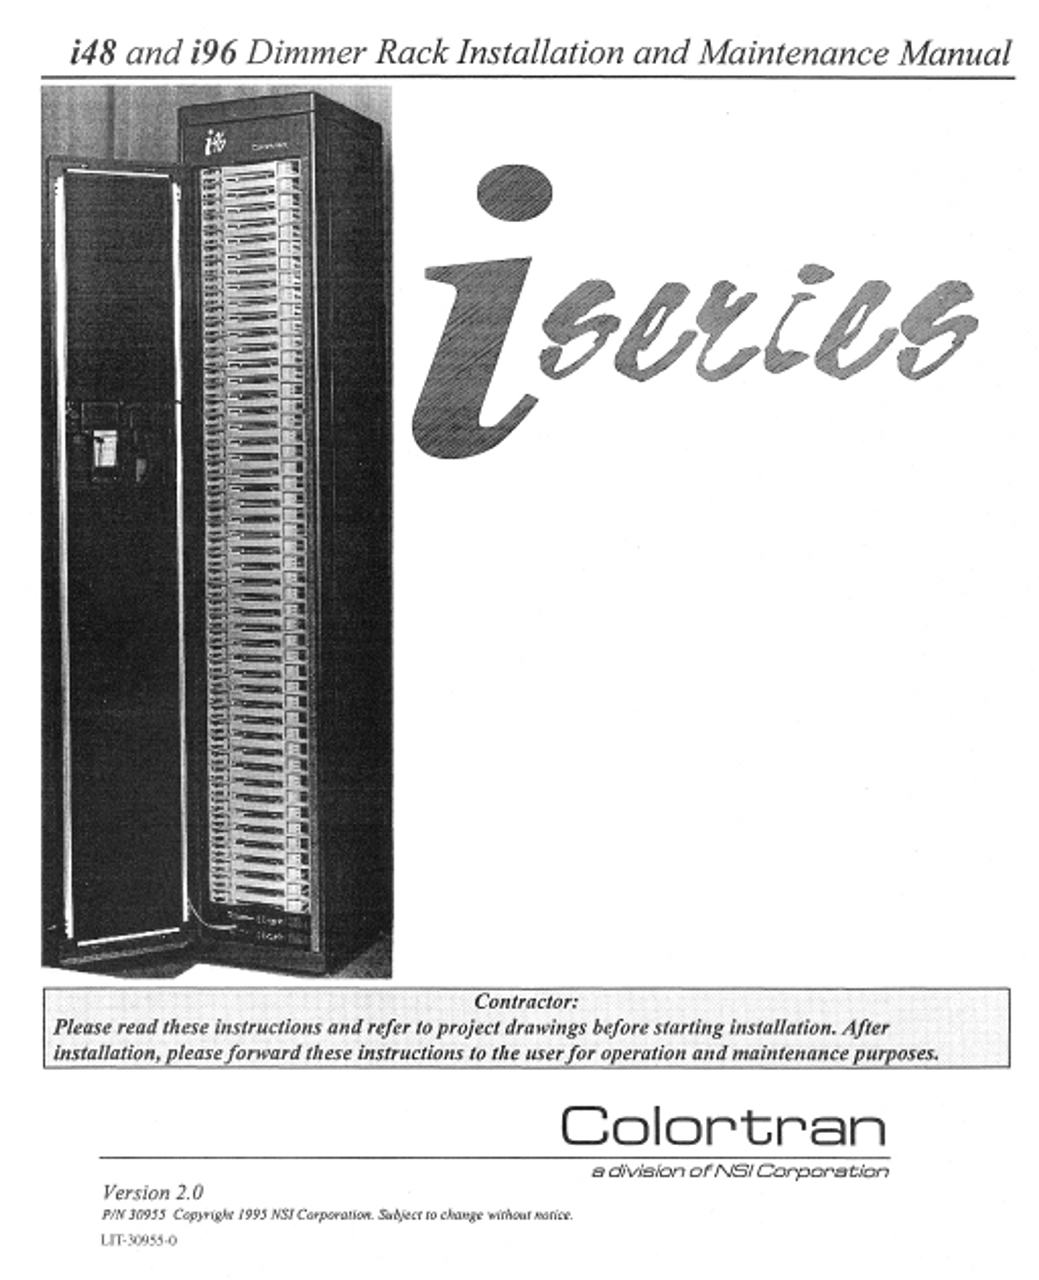 Colortran i48 and i96 Dimmer Rack Installation & Maintenance Manual